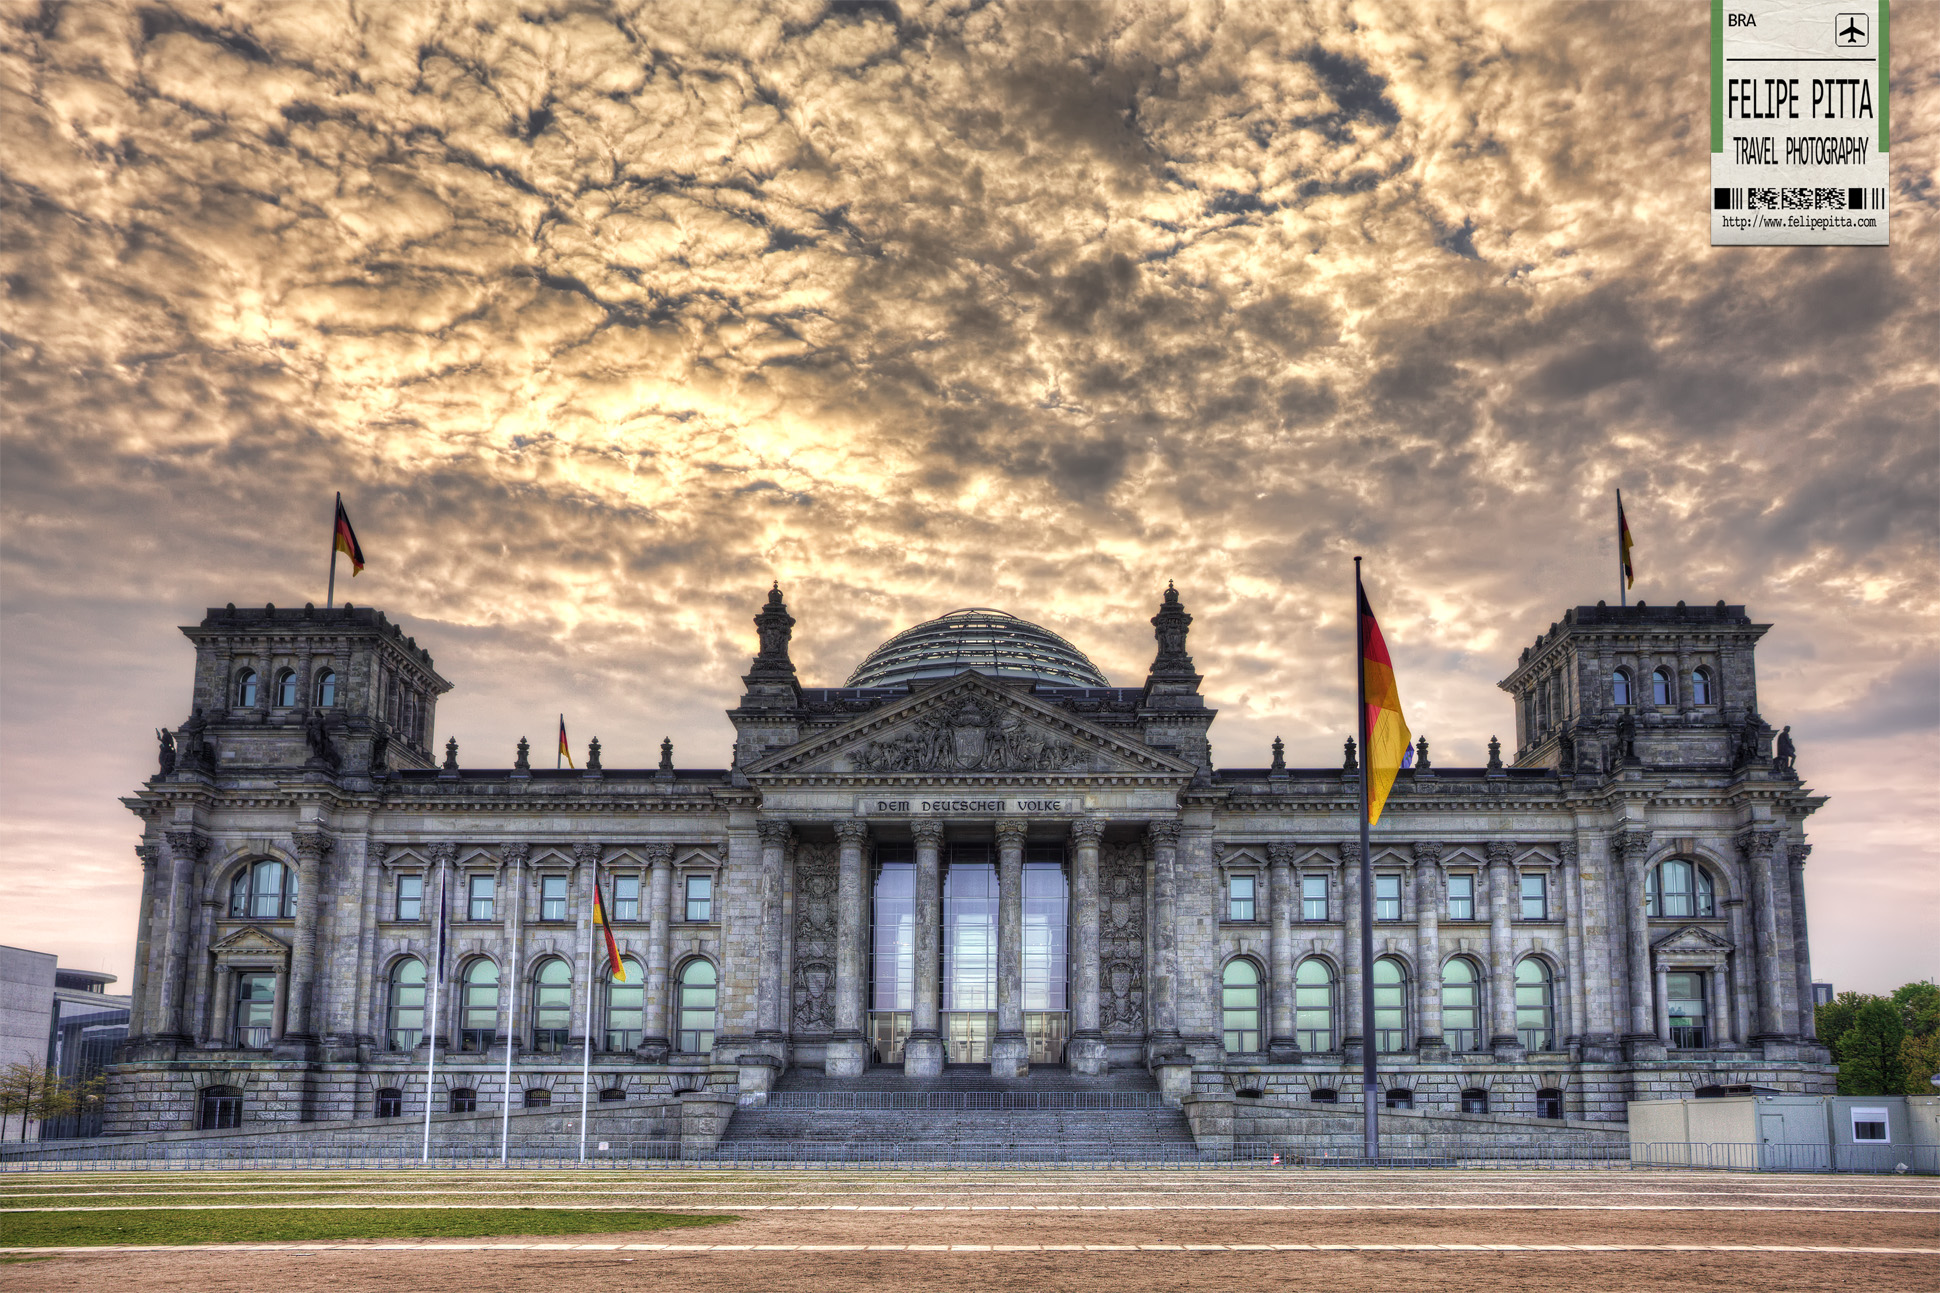 The Reichstag in Berlin - The seat of the German Parliament